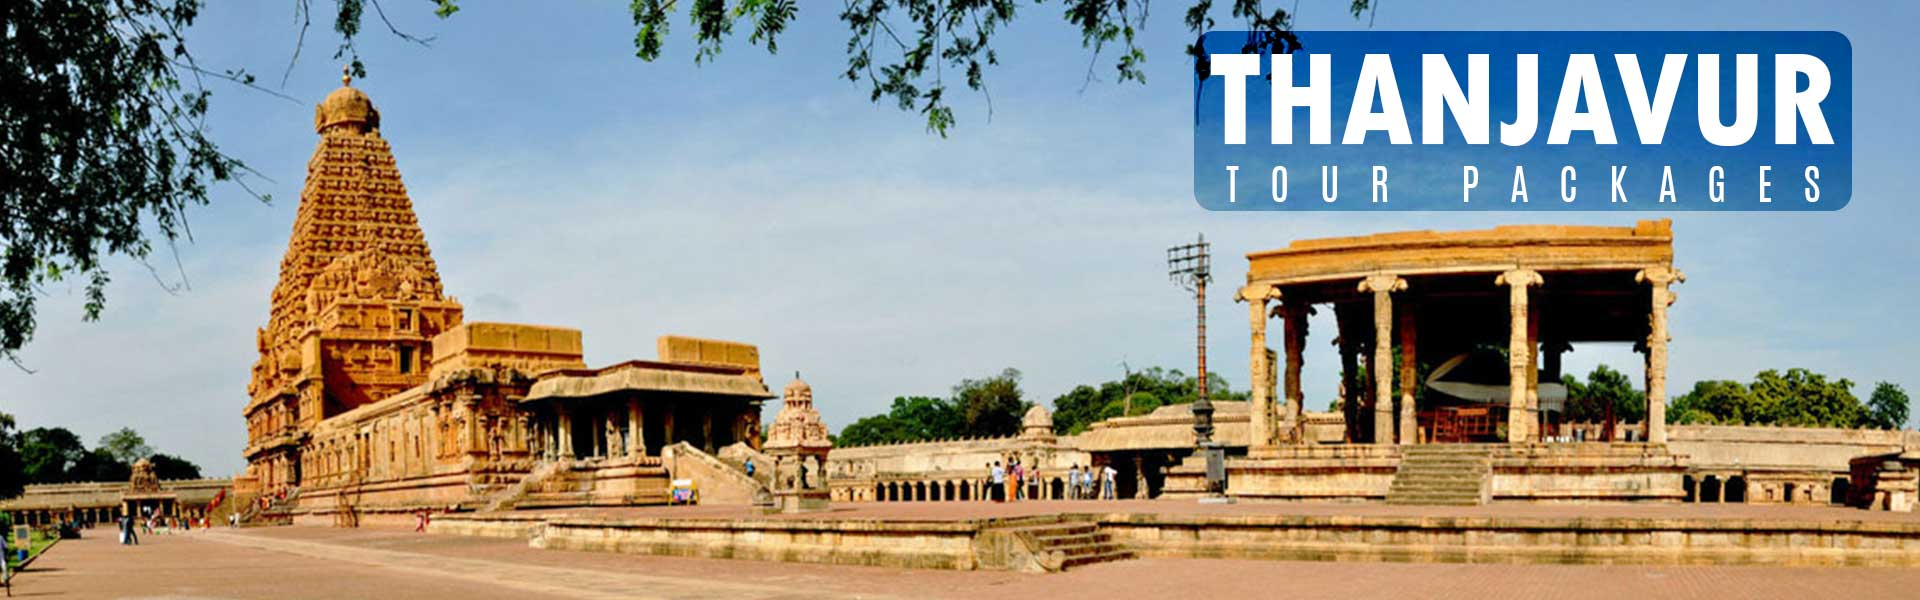 thanjavur-tour-packages